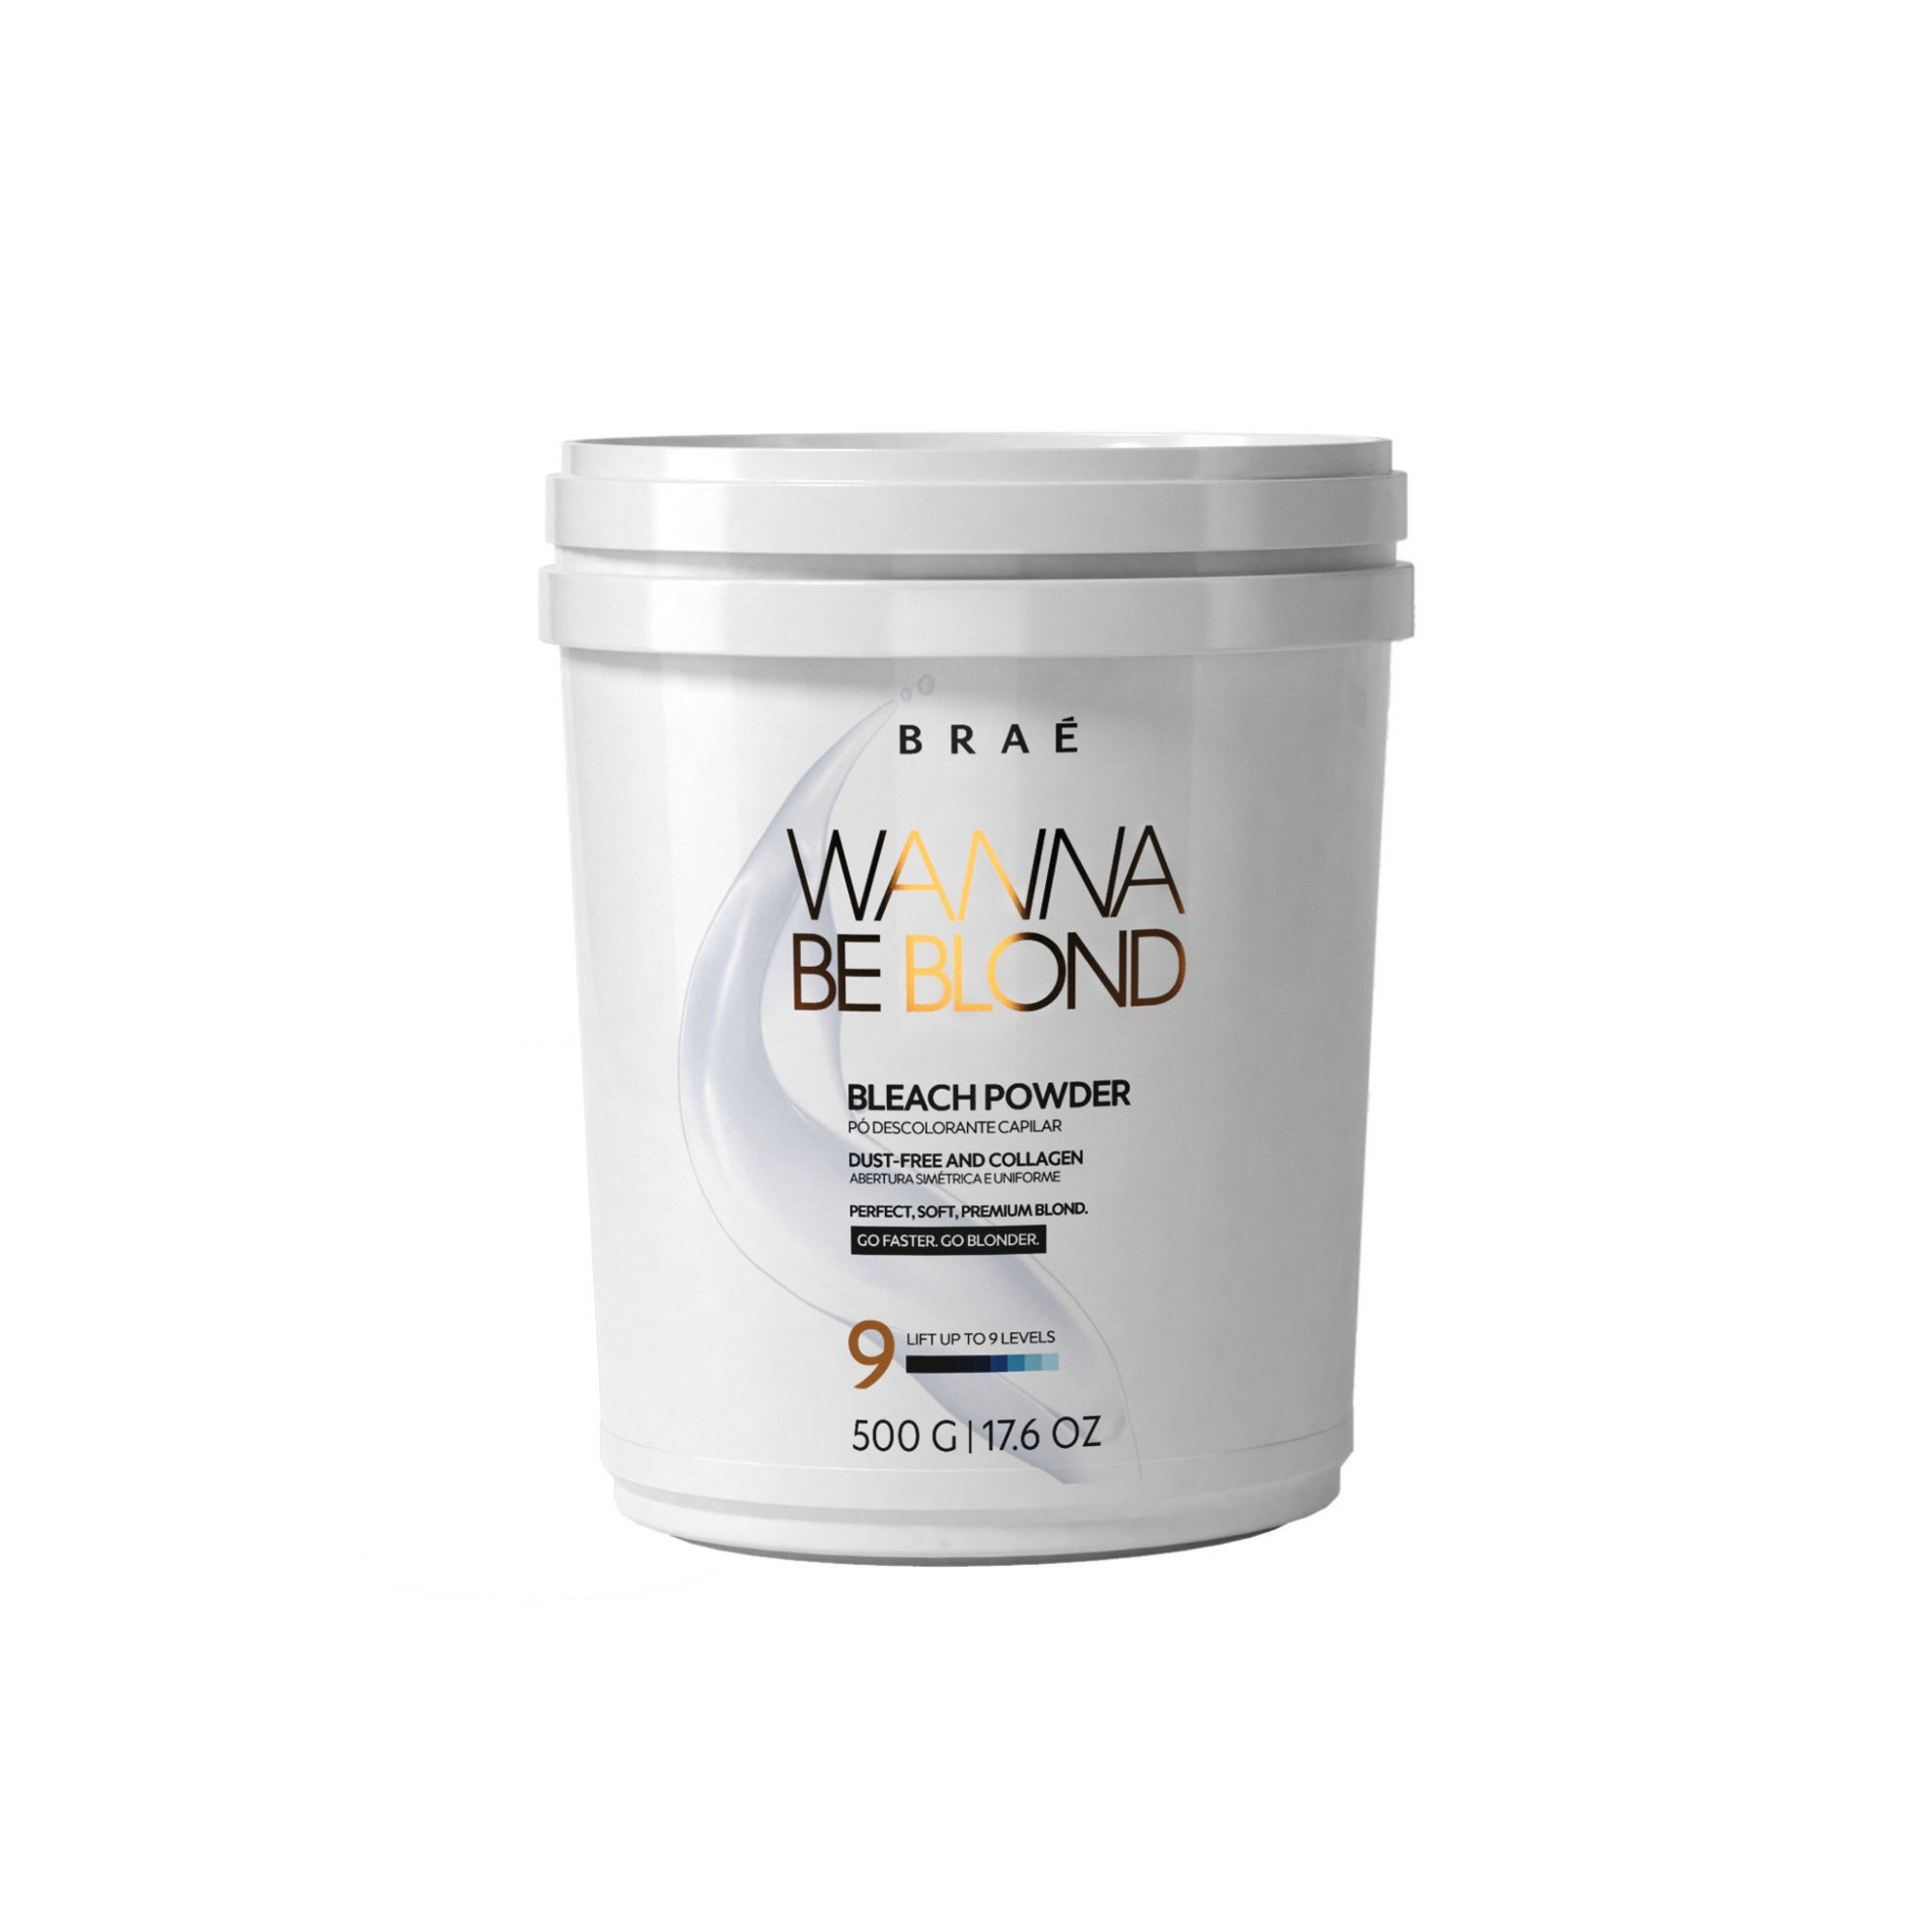 PÓ DESCOLORANTE BRAÉ WANNA BE BLOND - BLEACH POWDER 500 G